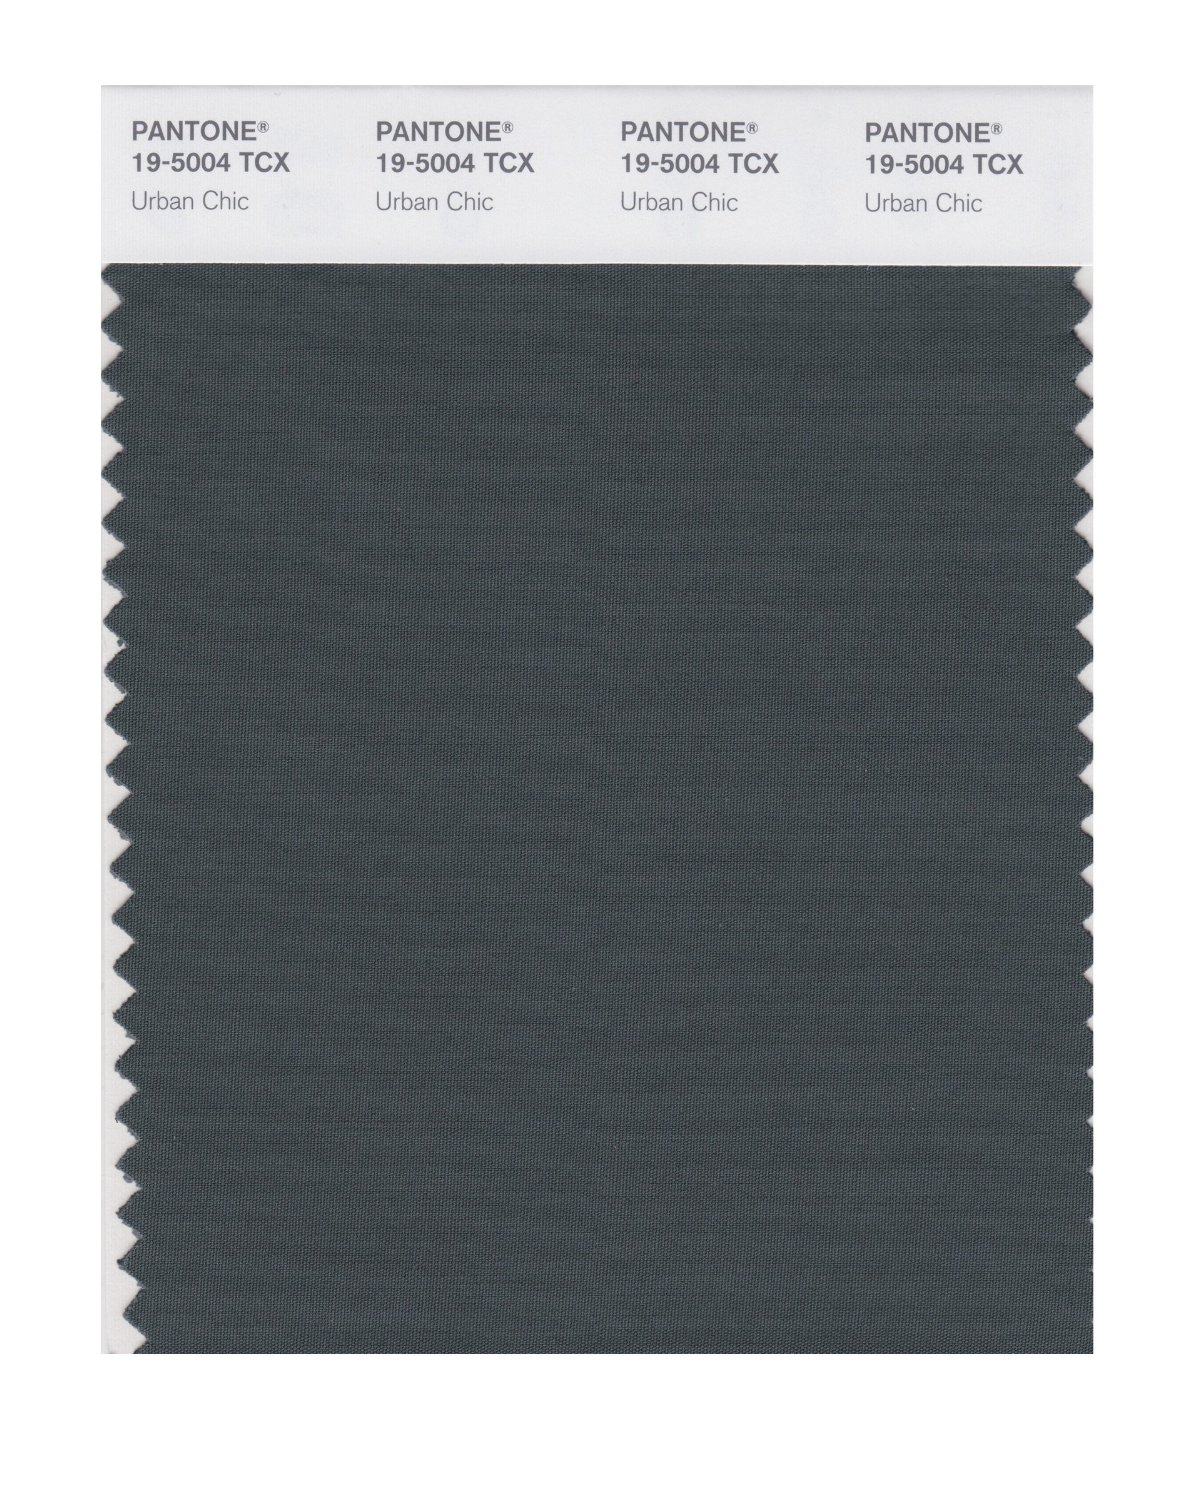 Pantone Smart Swatch 19-5004 Urban Chic